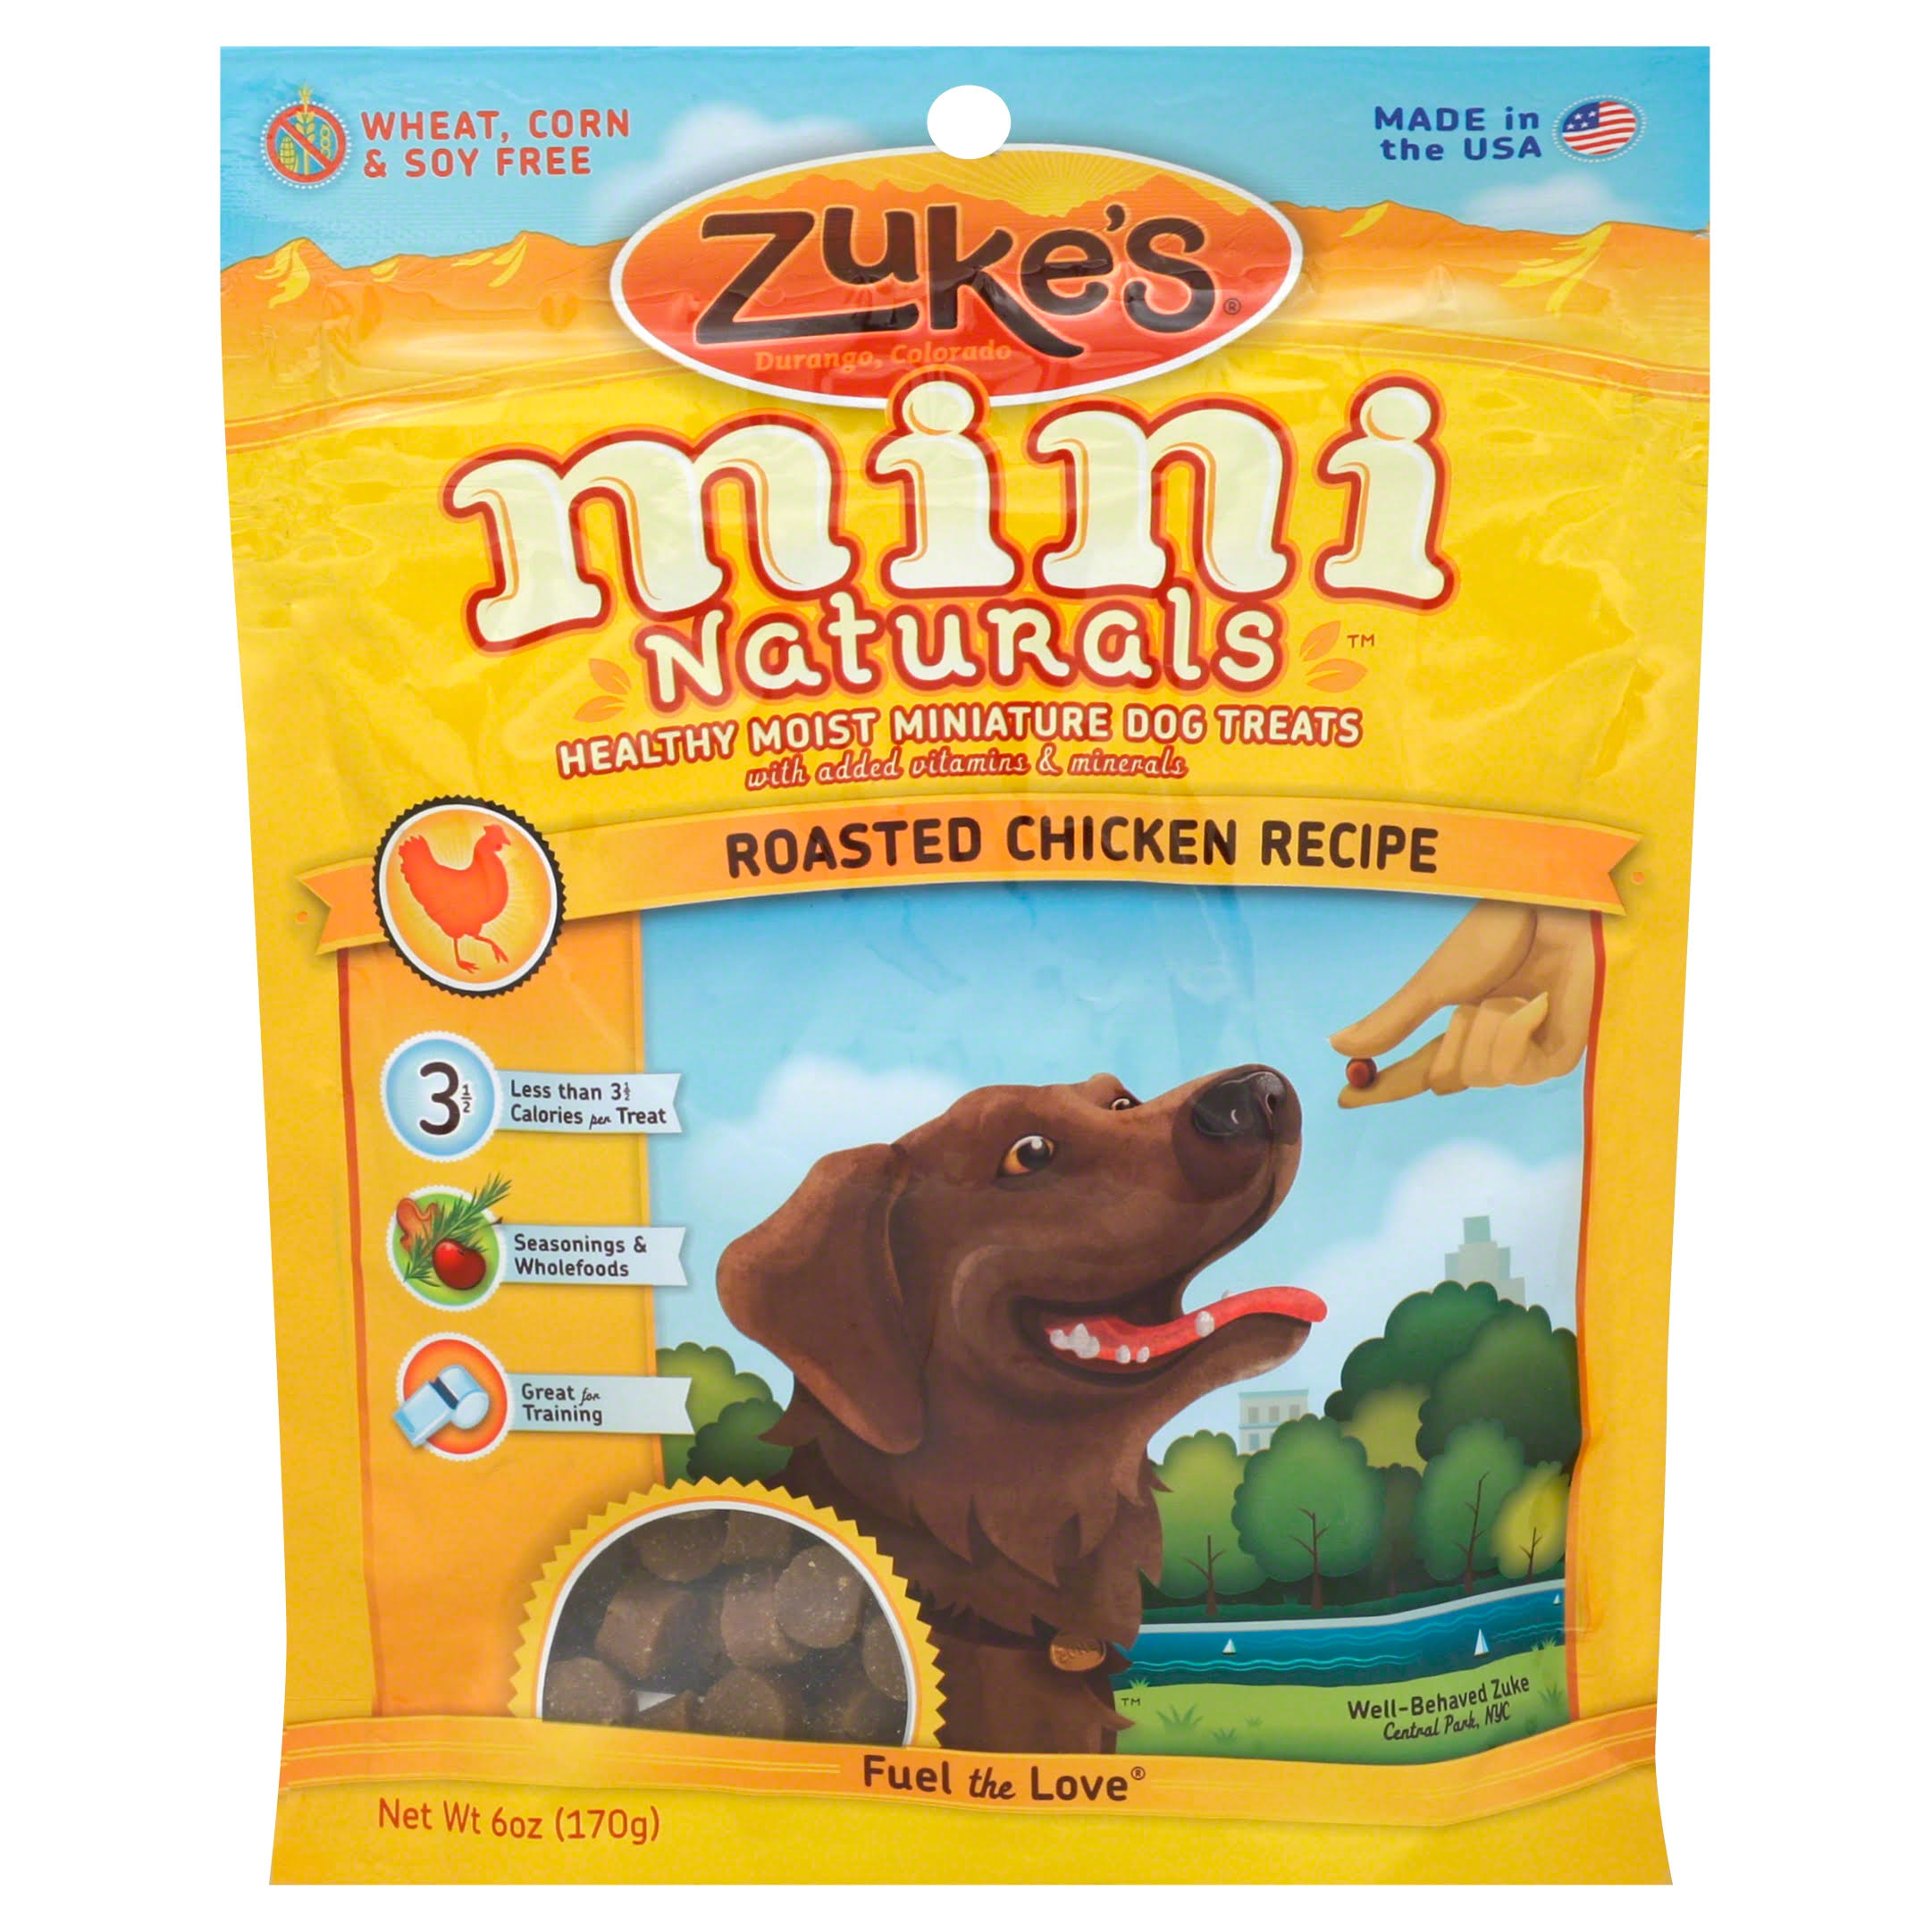 Zuke's Mini Naturals Dog Treats - Roasted Chicken, 6oz